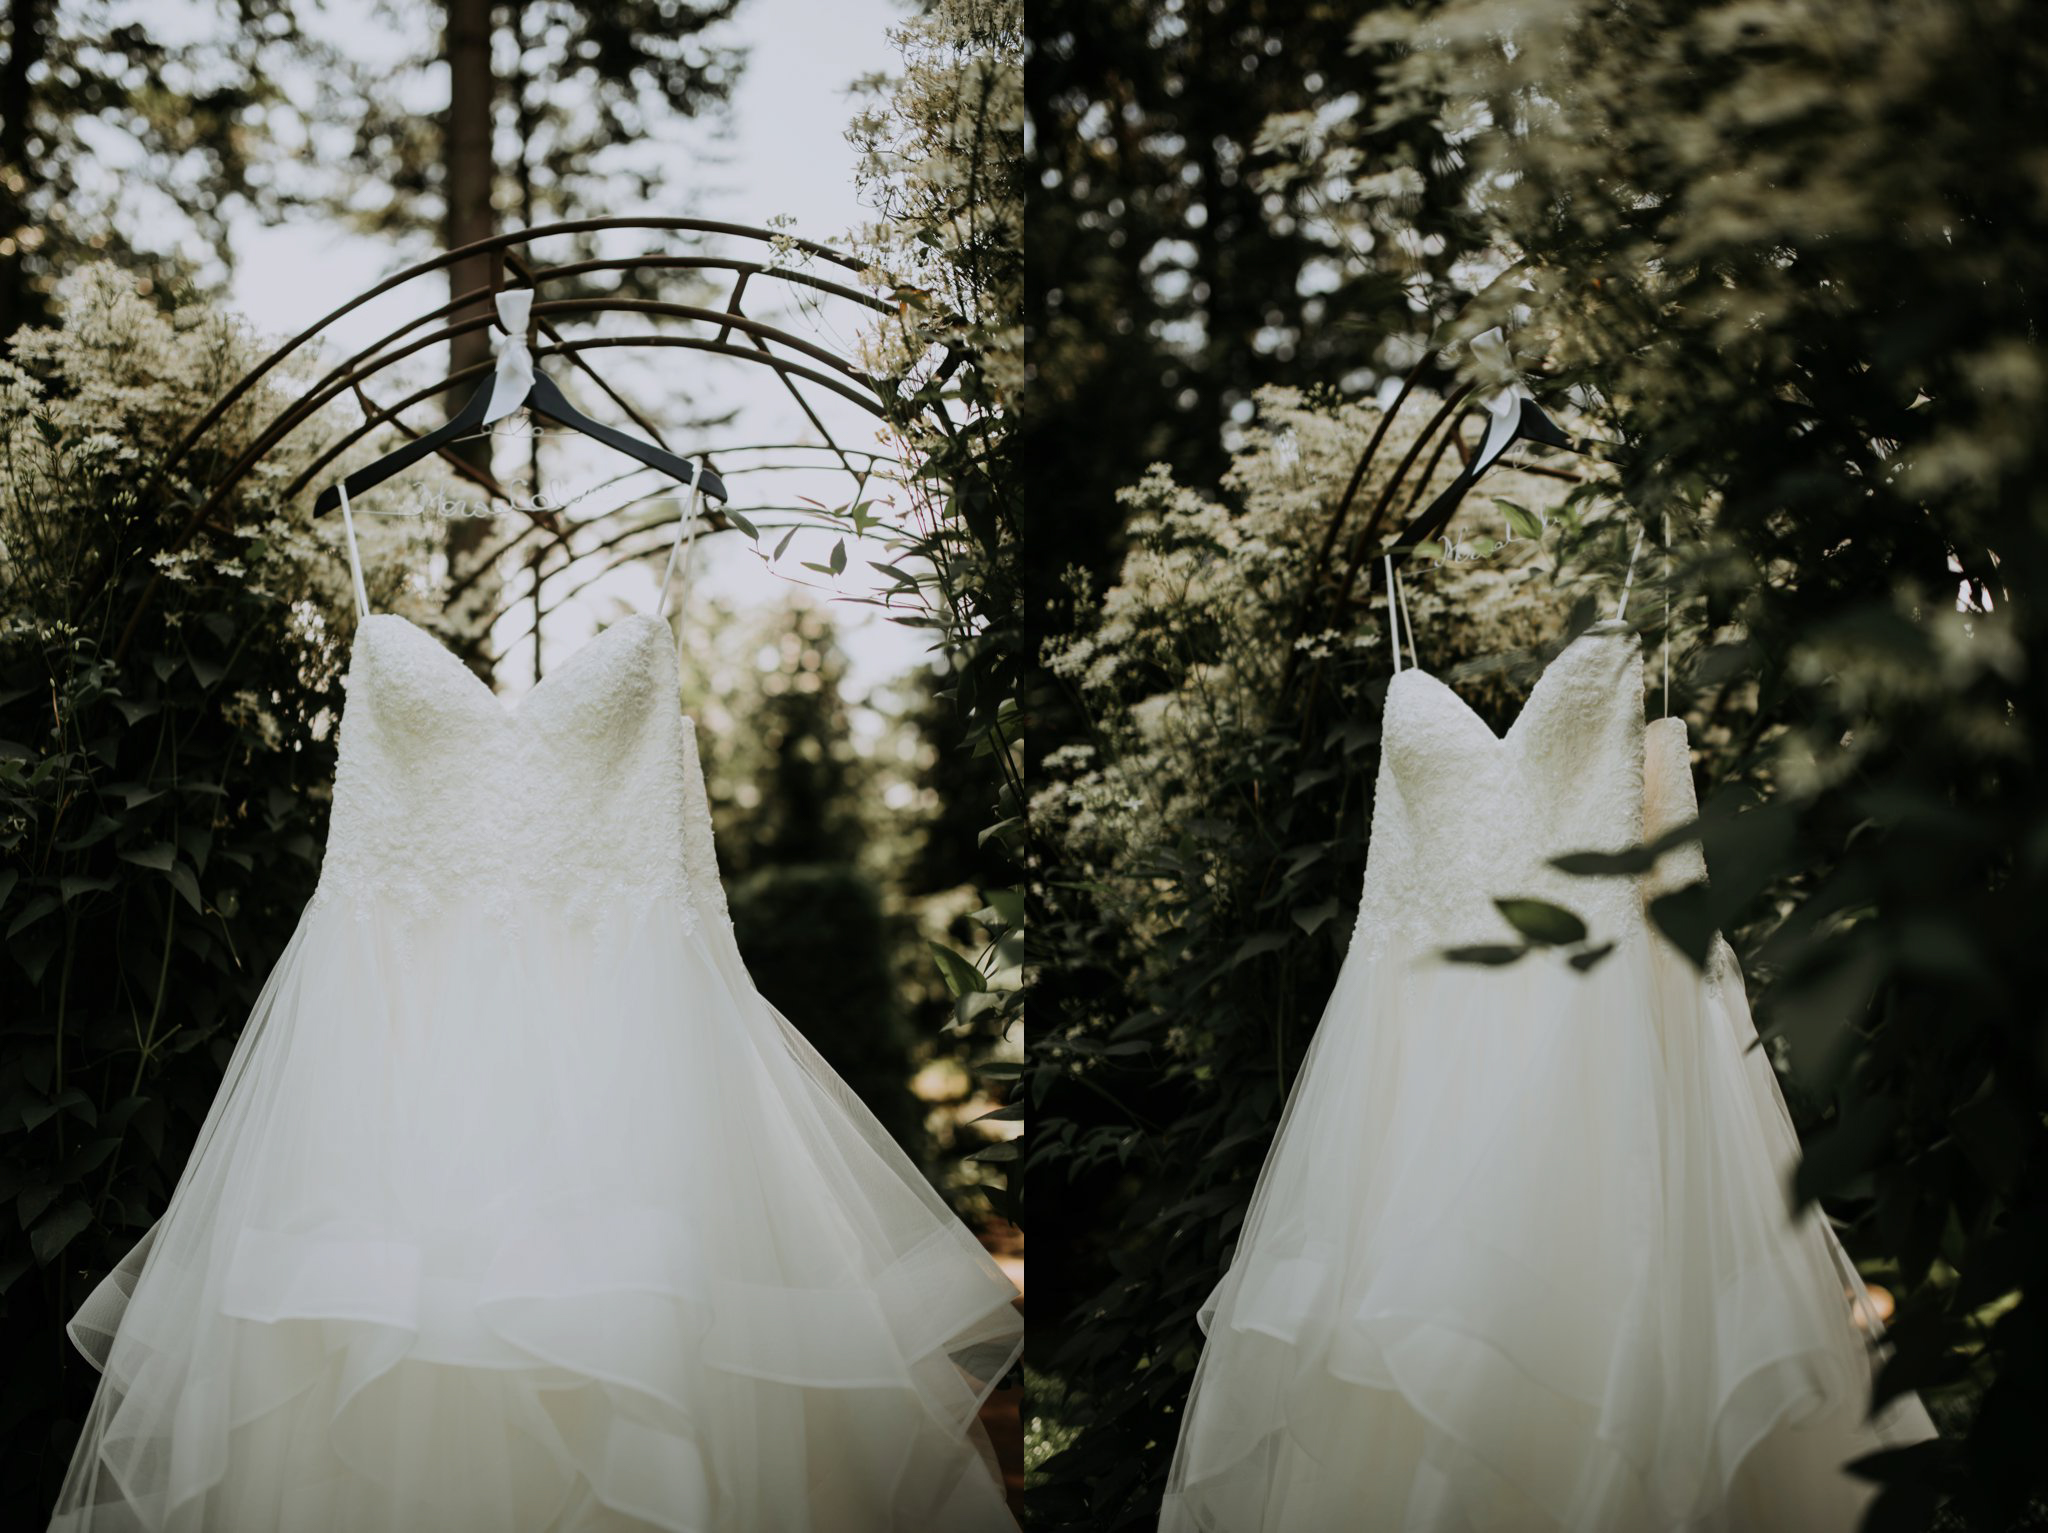 evergreen-gardens-bellingham-wedding-seattle-photographer-caitlyn-nikula-6.jpg